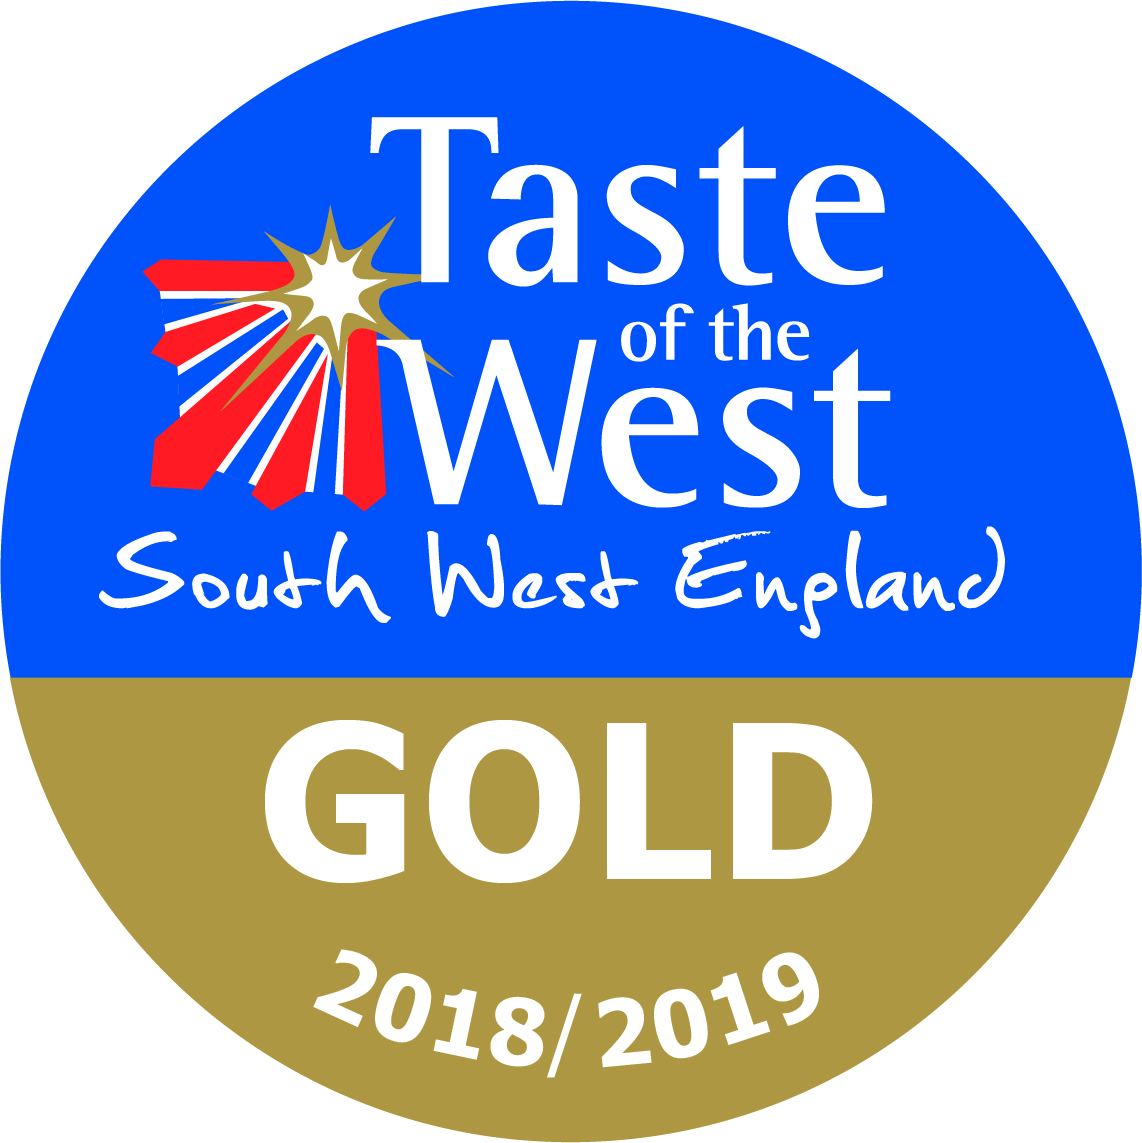 Award Winning Shop - Our on-site shop won Taste of the West Gold 2018/19 in the Specialist Retailer category, selling all of our bottled beers, as well as a range of Cornish ciders, wines and spirits.Keep an eye out for regular promotions and special offers!